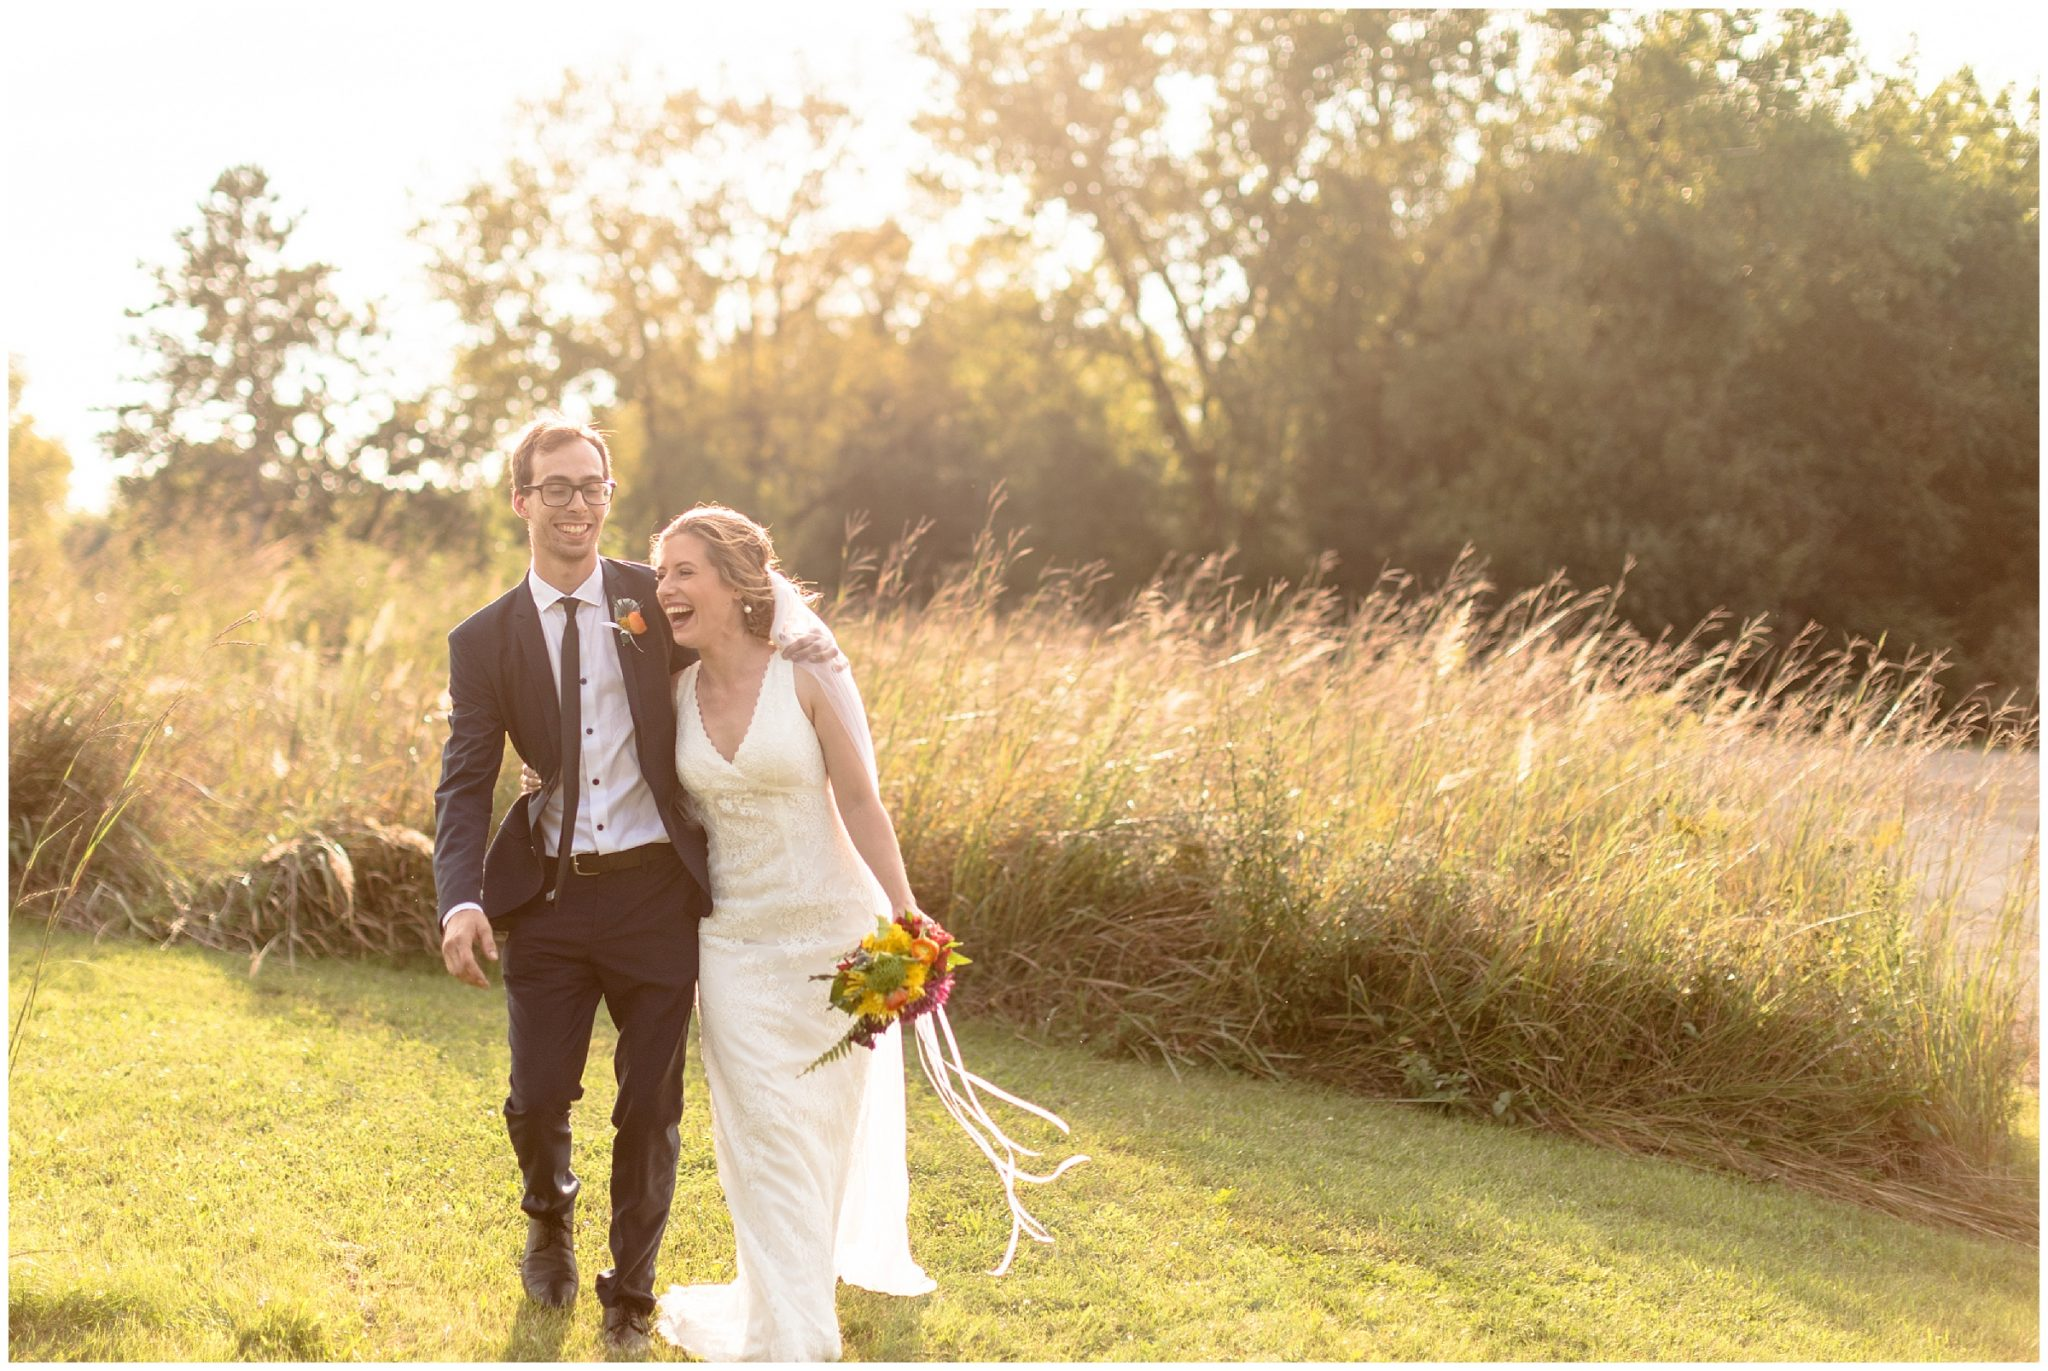 Wildlife Prairie Park Wedding Peoria Illinois_0150